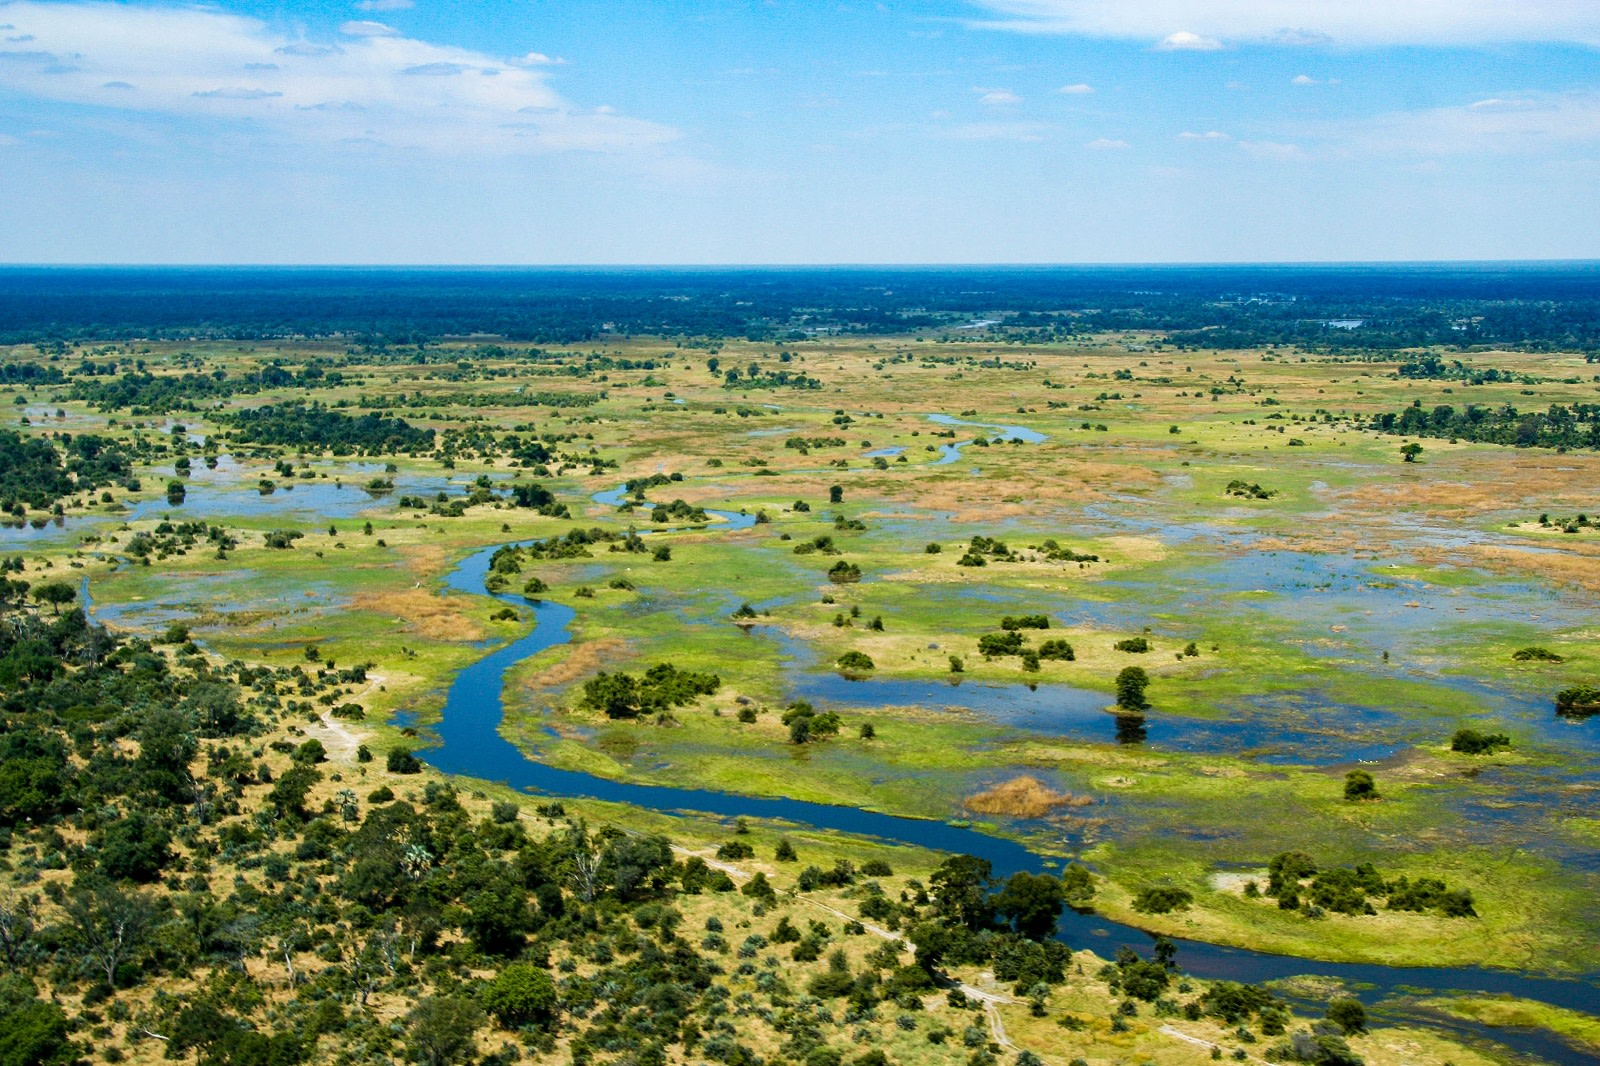 Okavango Delta in the green season